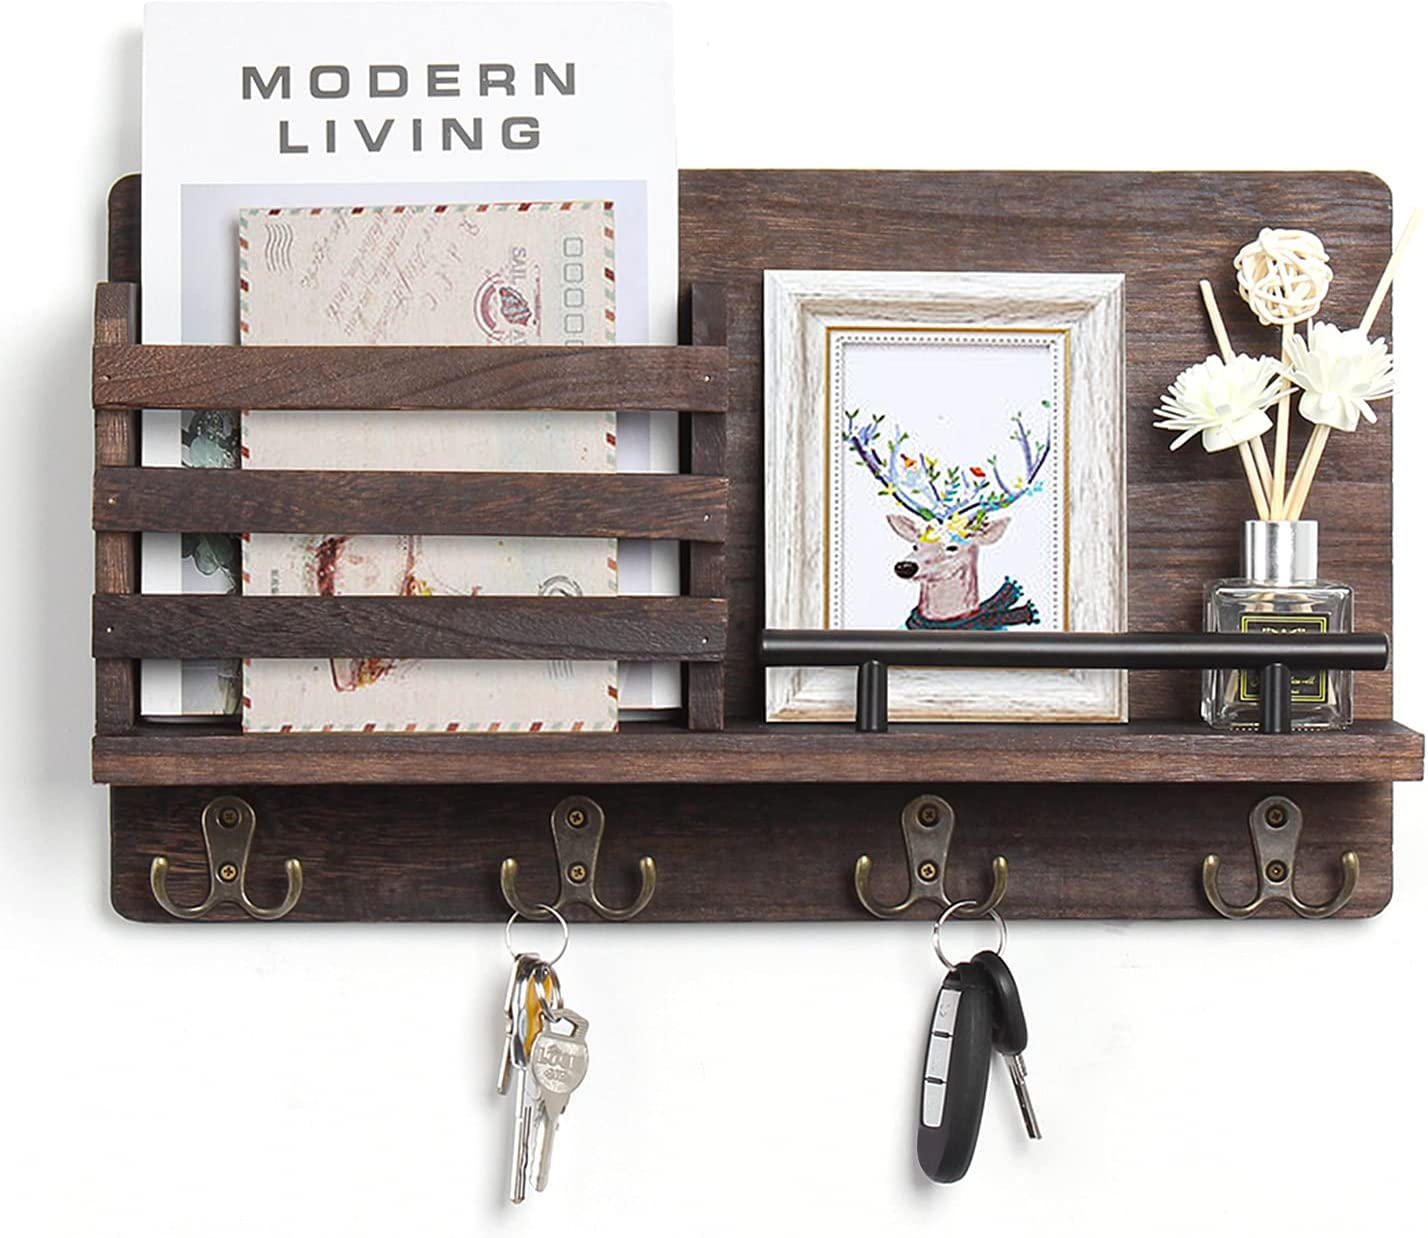 Mail Holder Organizer Wall Mounted Rustic Wood Mail Sorter with Key 8 Hooks